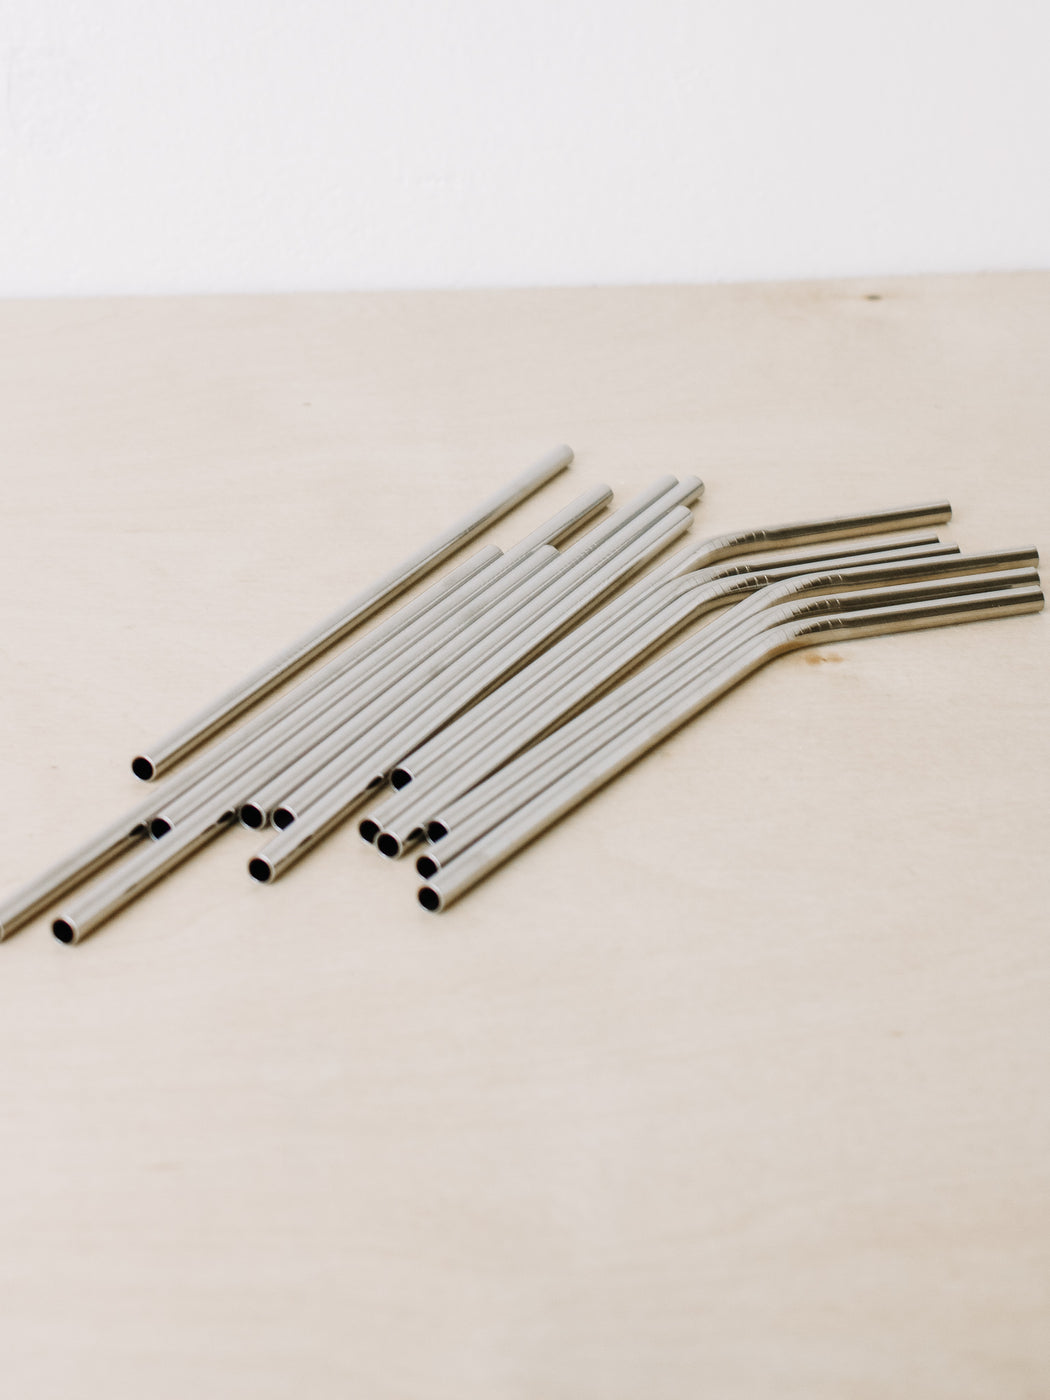 Lore General Supplies - Stainless Steel Drinking Straw